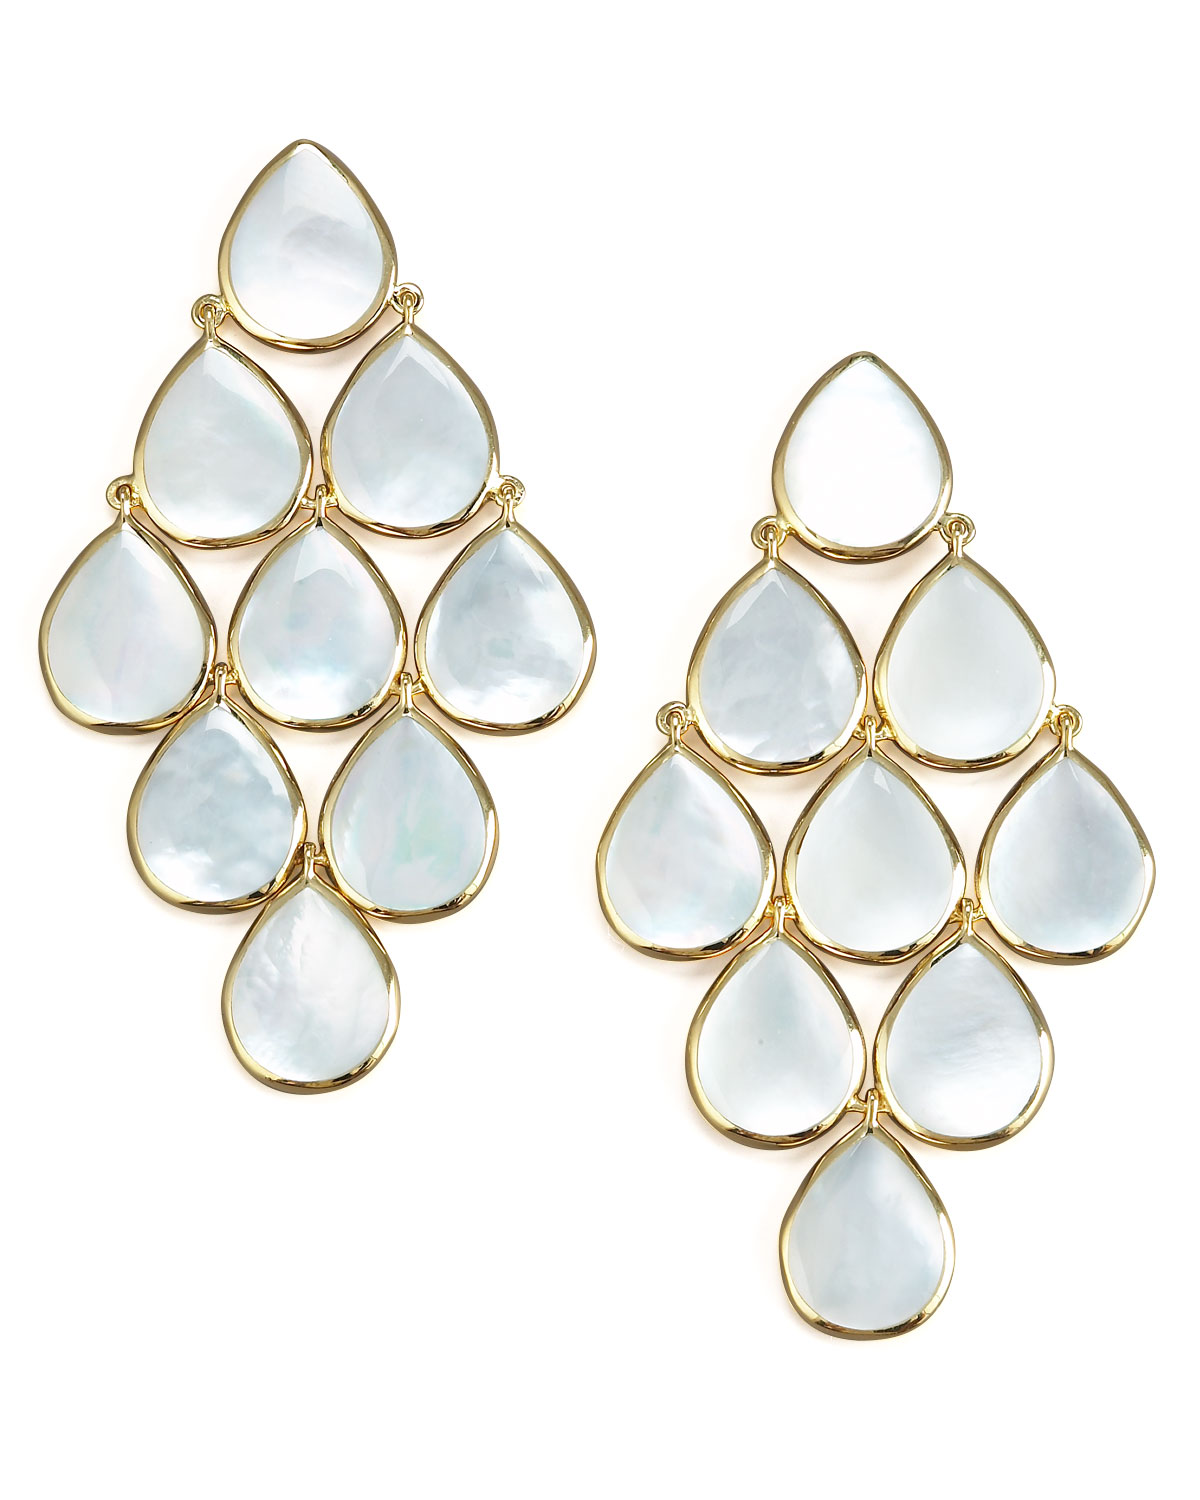 Ippolita 925 Rock Candy Teardrop Cascade Earrings in Mother-of-Pearl yVsE8RPM